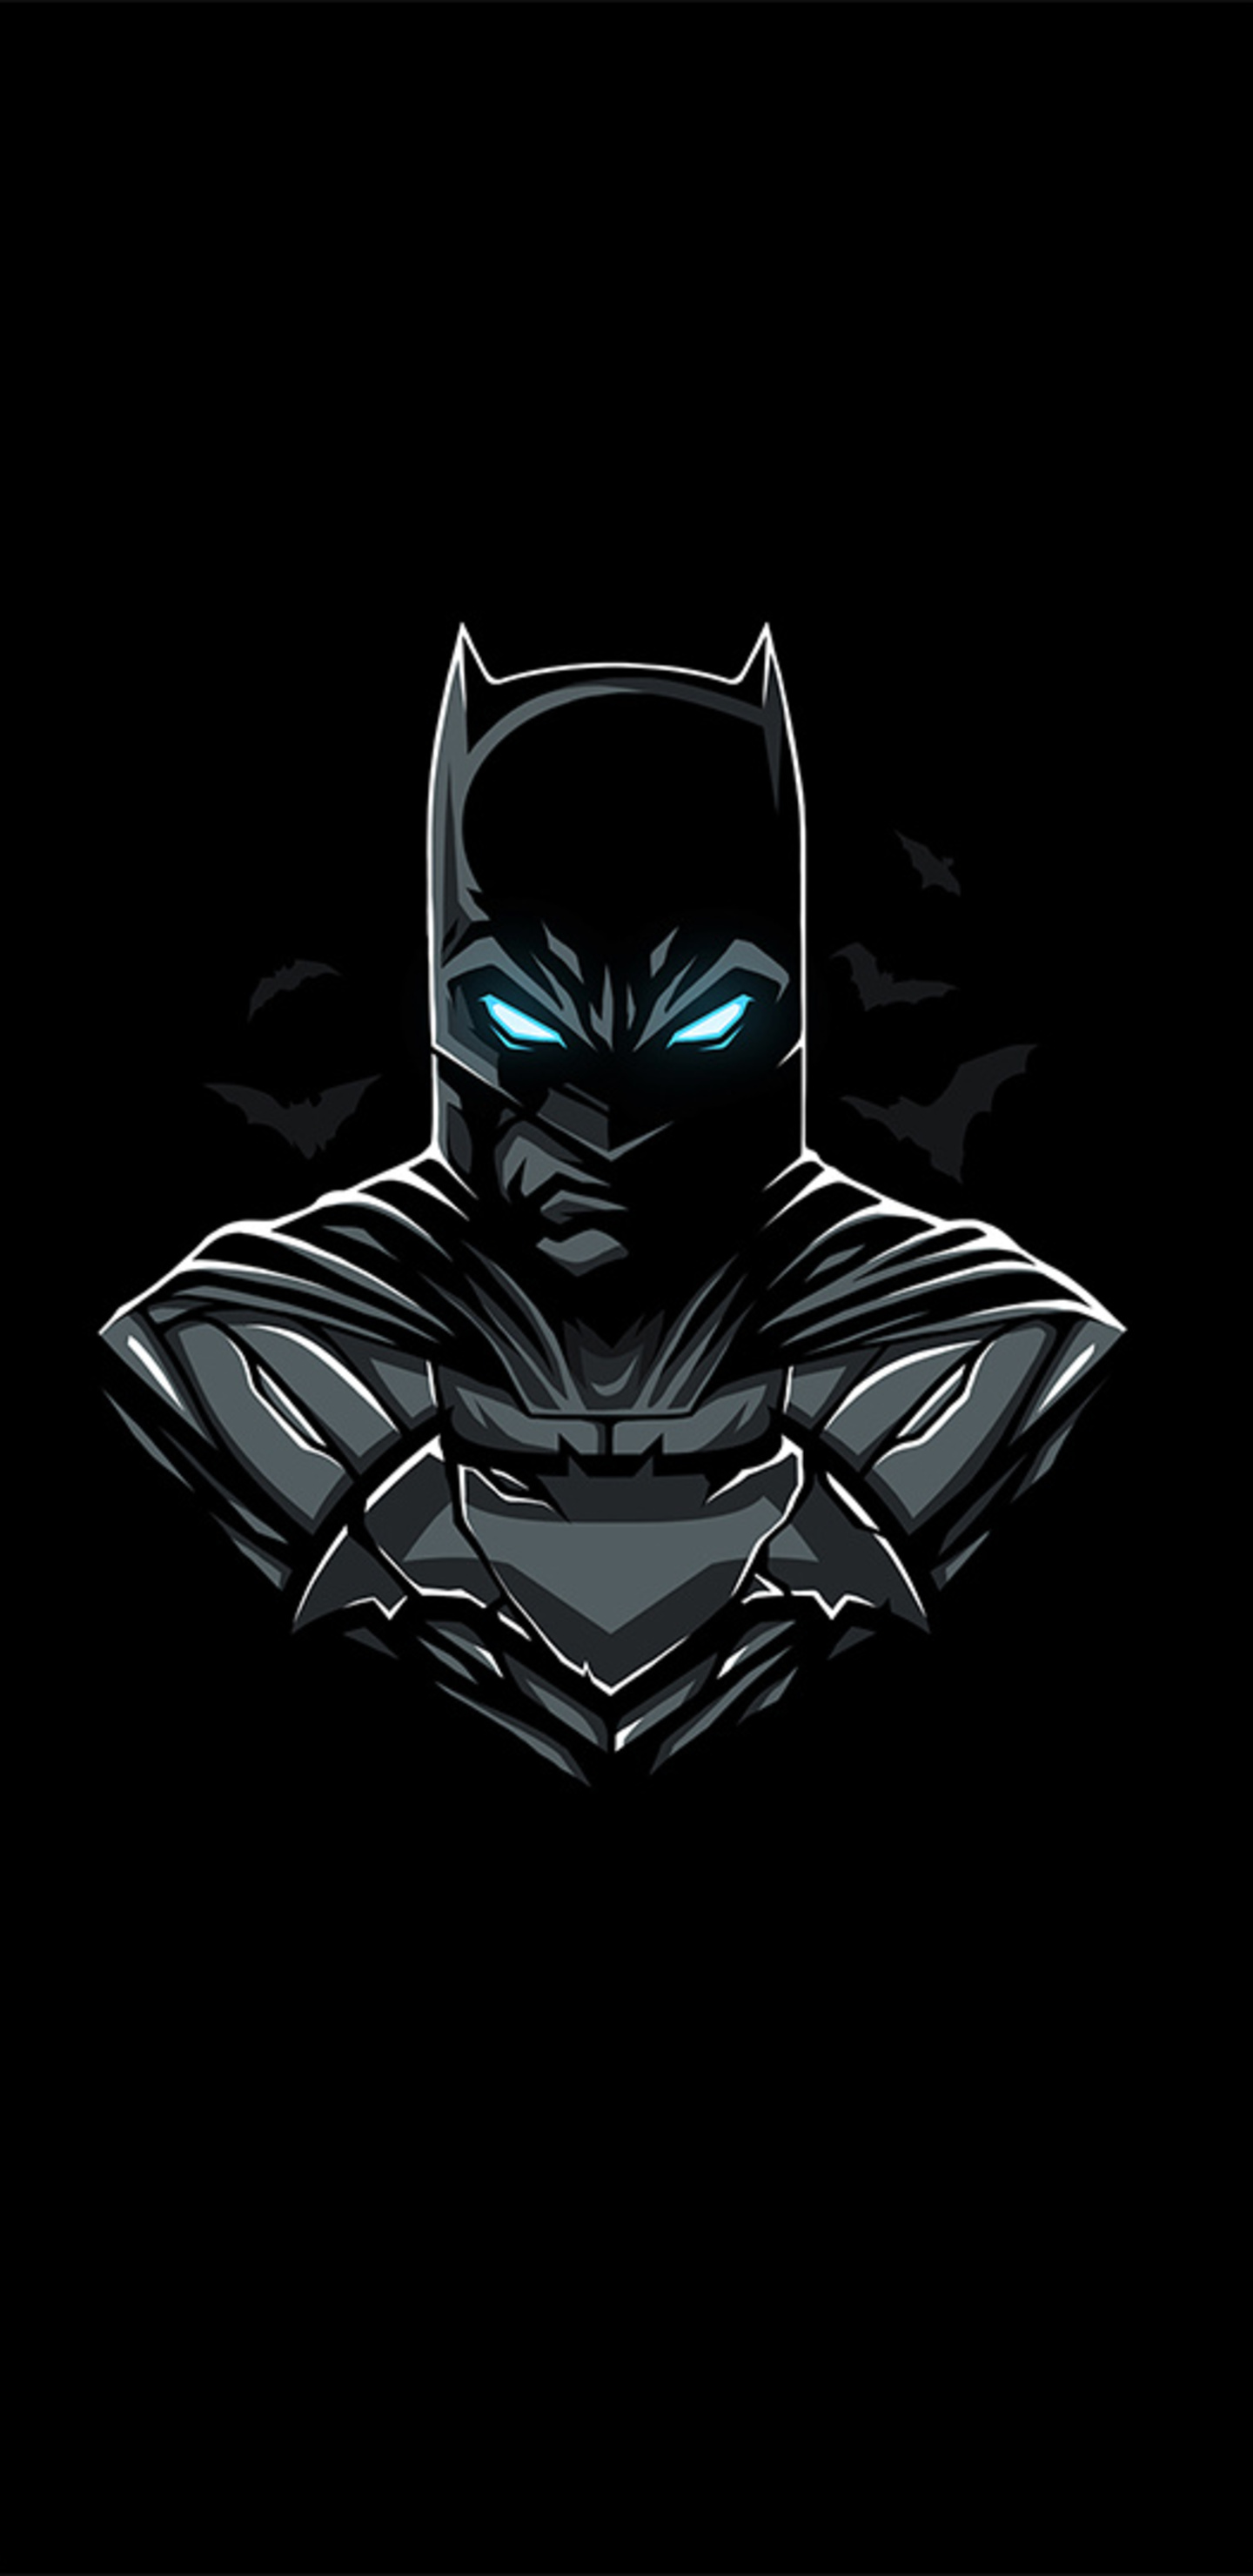 1440x2960 Batman Amoled Samsung Galaxy Note 9 8 S9 S8 S8 Qhd Hd 4k